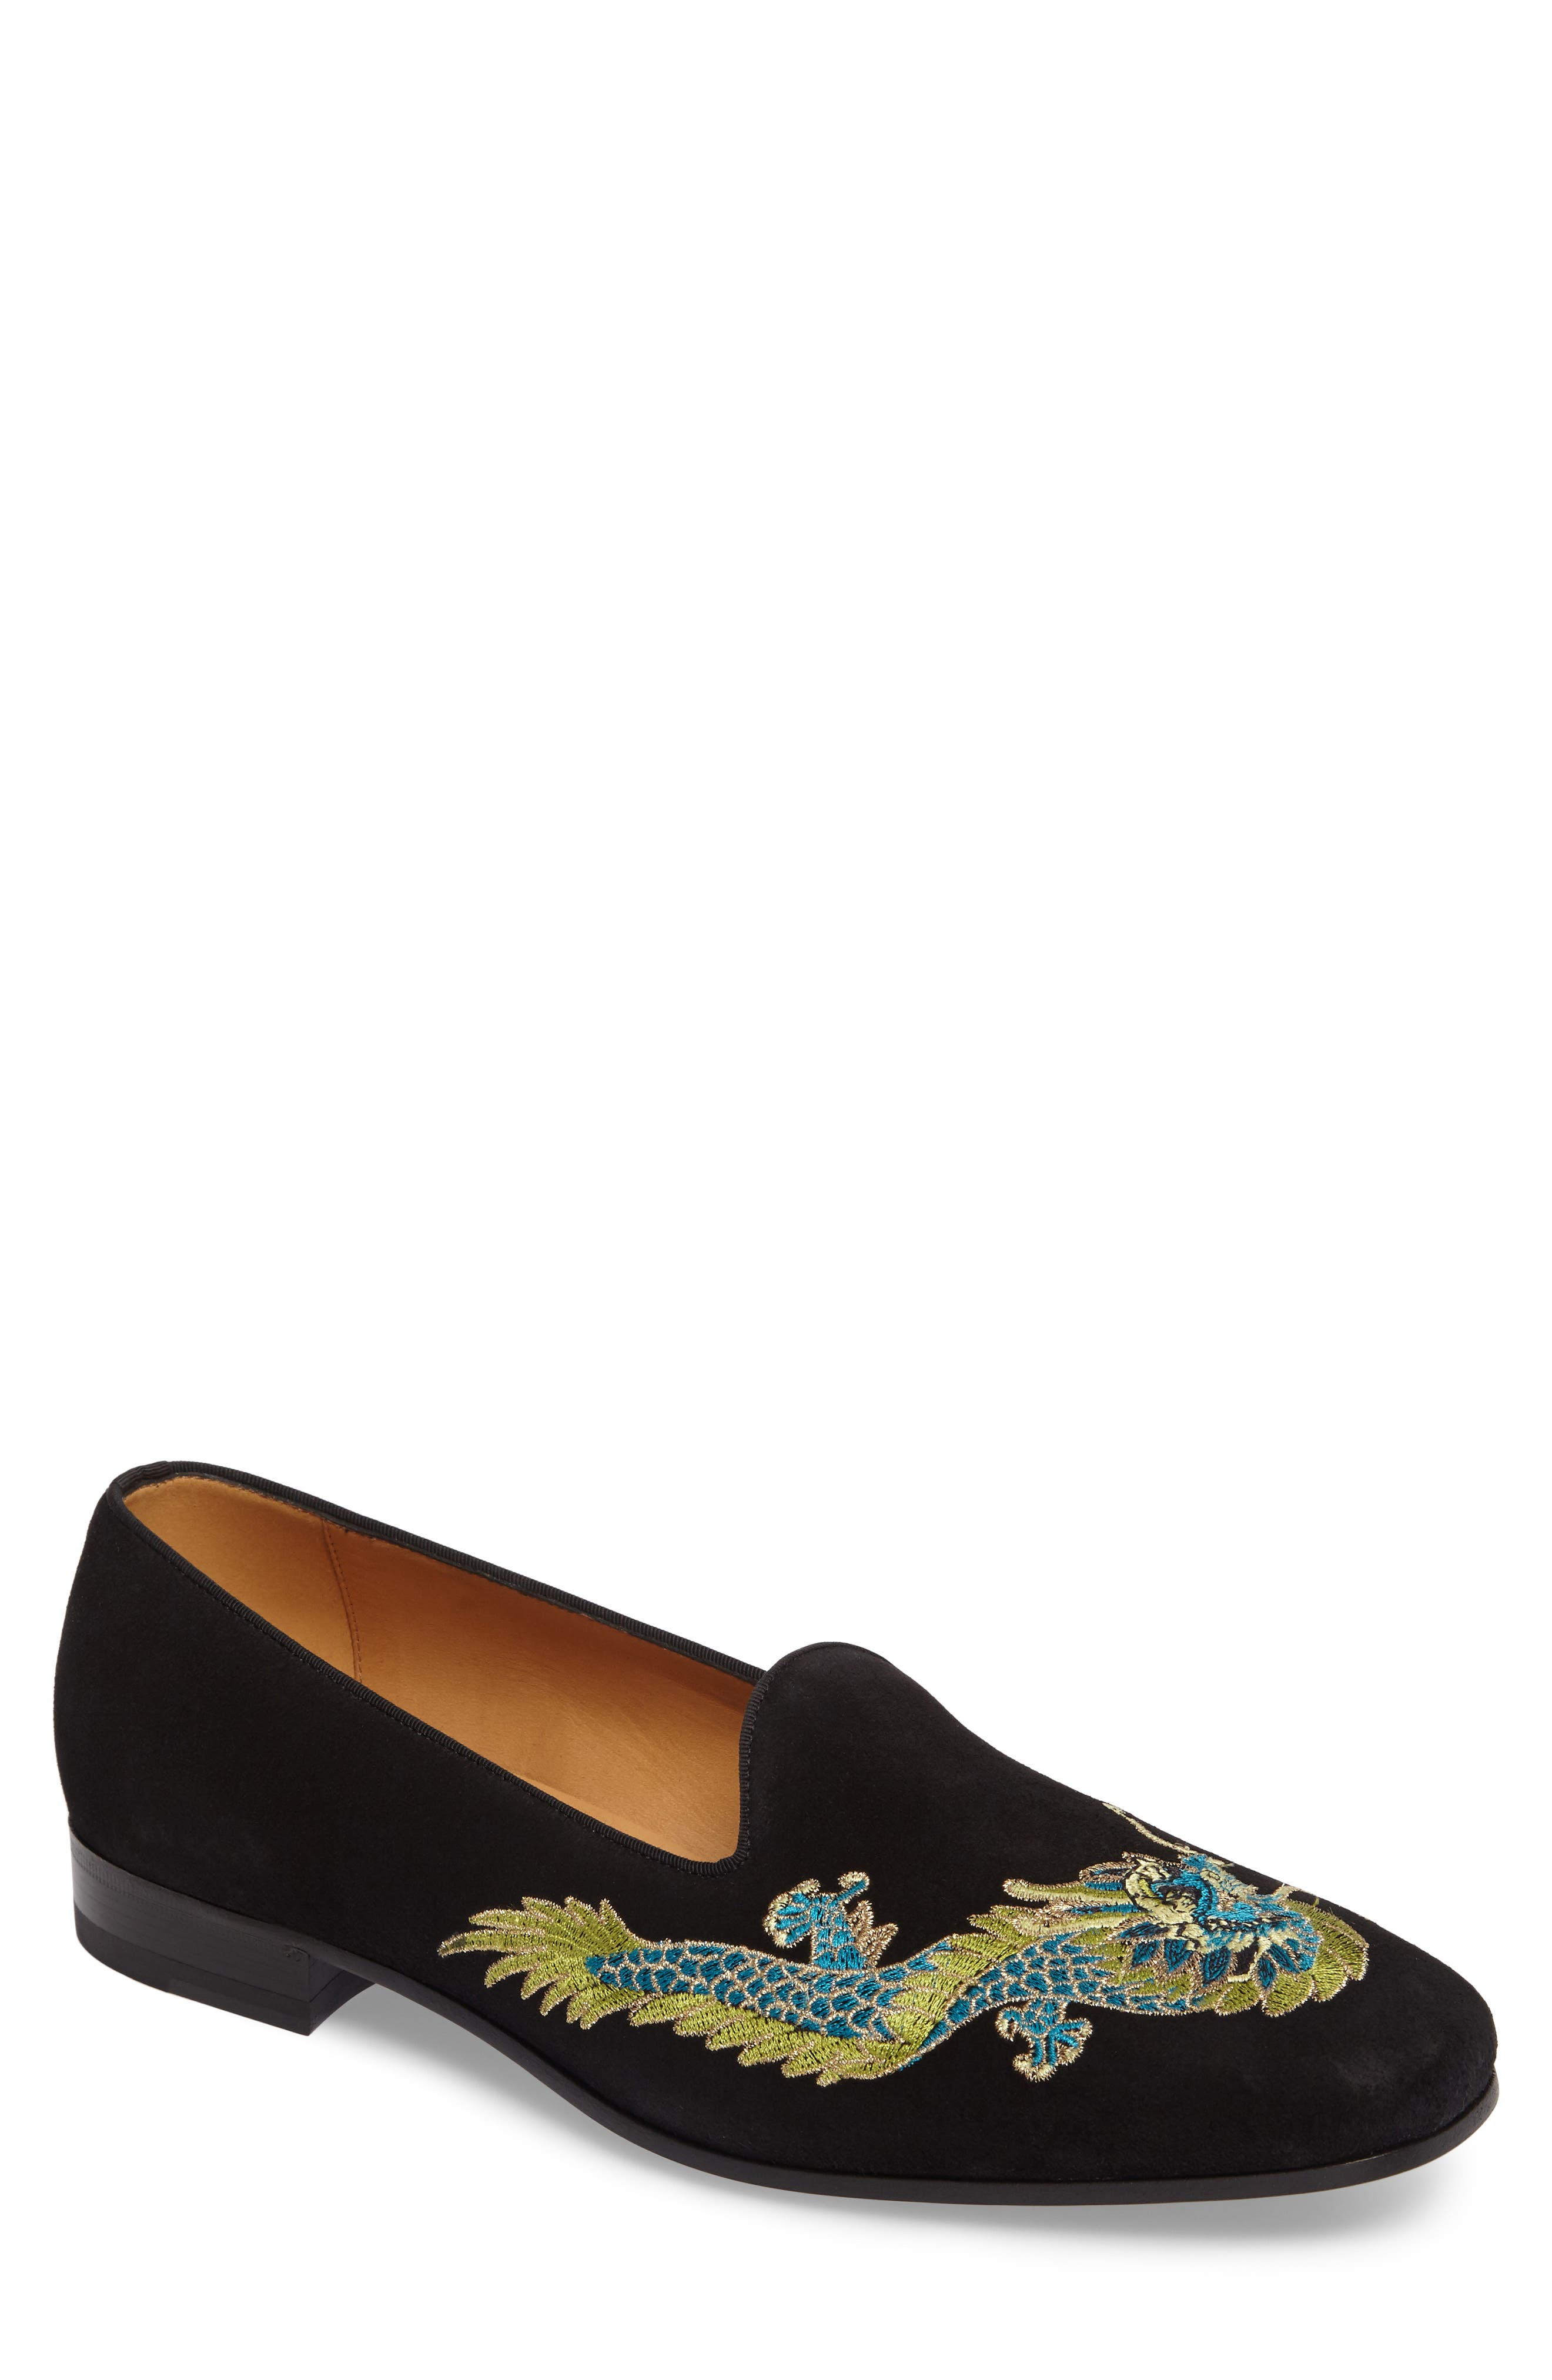 New Gallipoli Dragon Loafer,                         Main,                         color, Black Suede